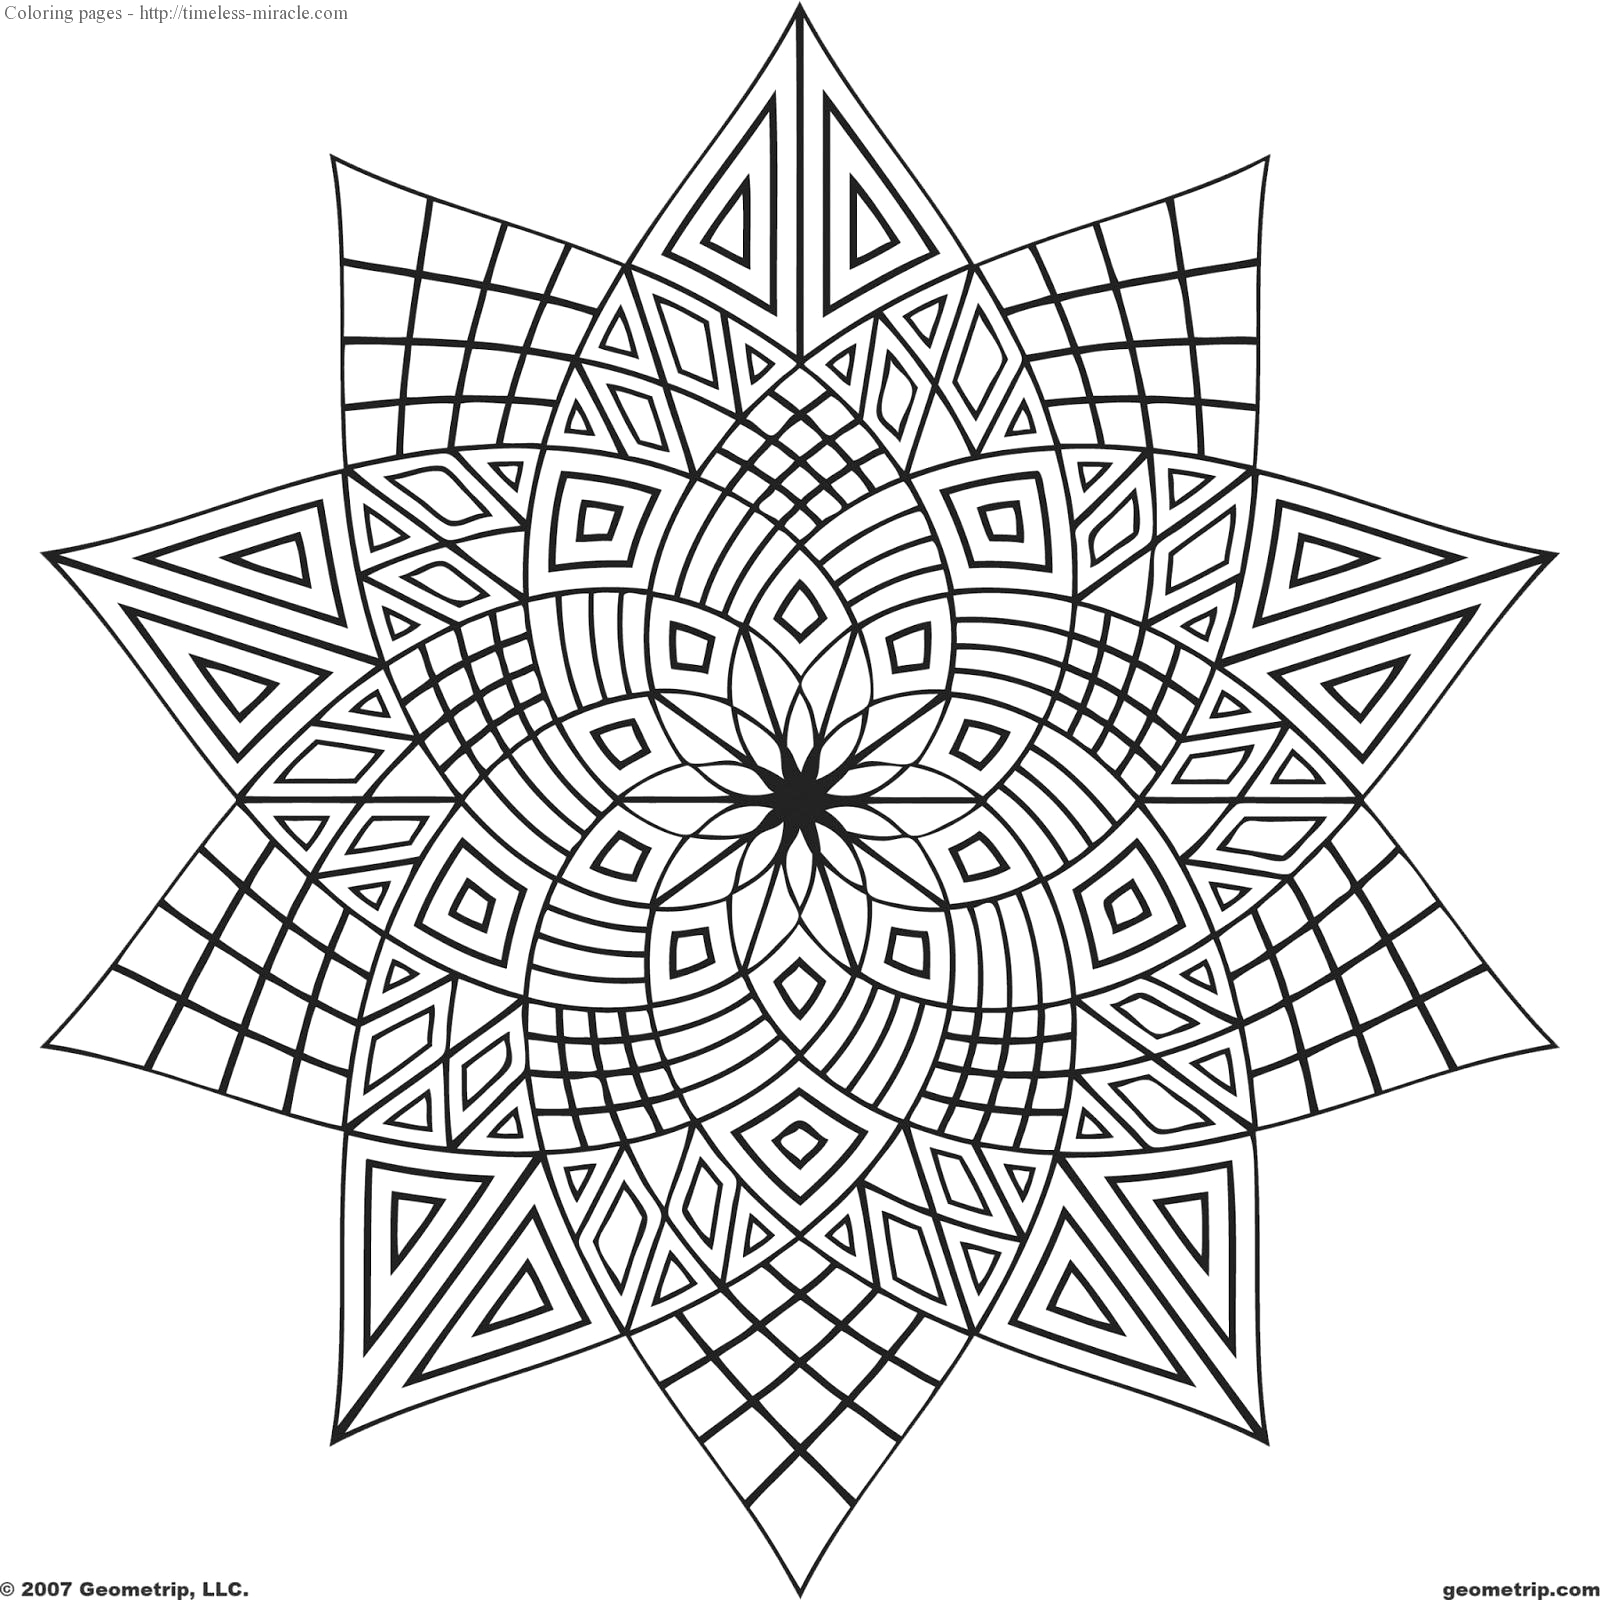 Coloring Pages for Girls 10 and Up Coloring Pages for Girls 10 and Up Timeless Miracle